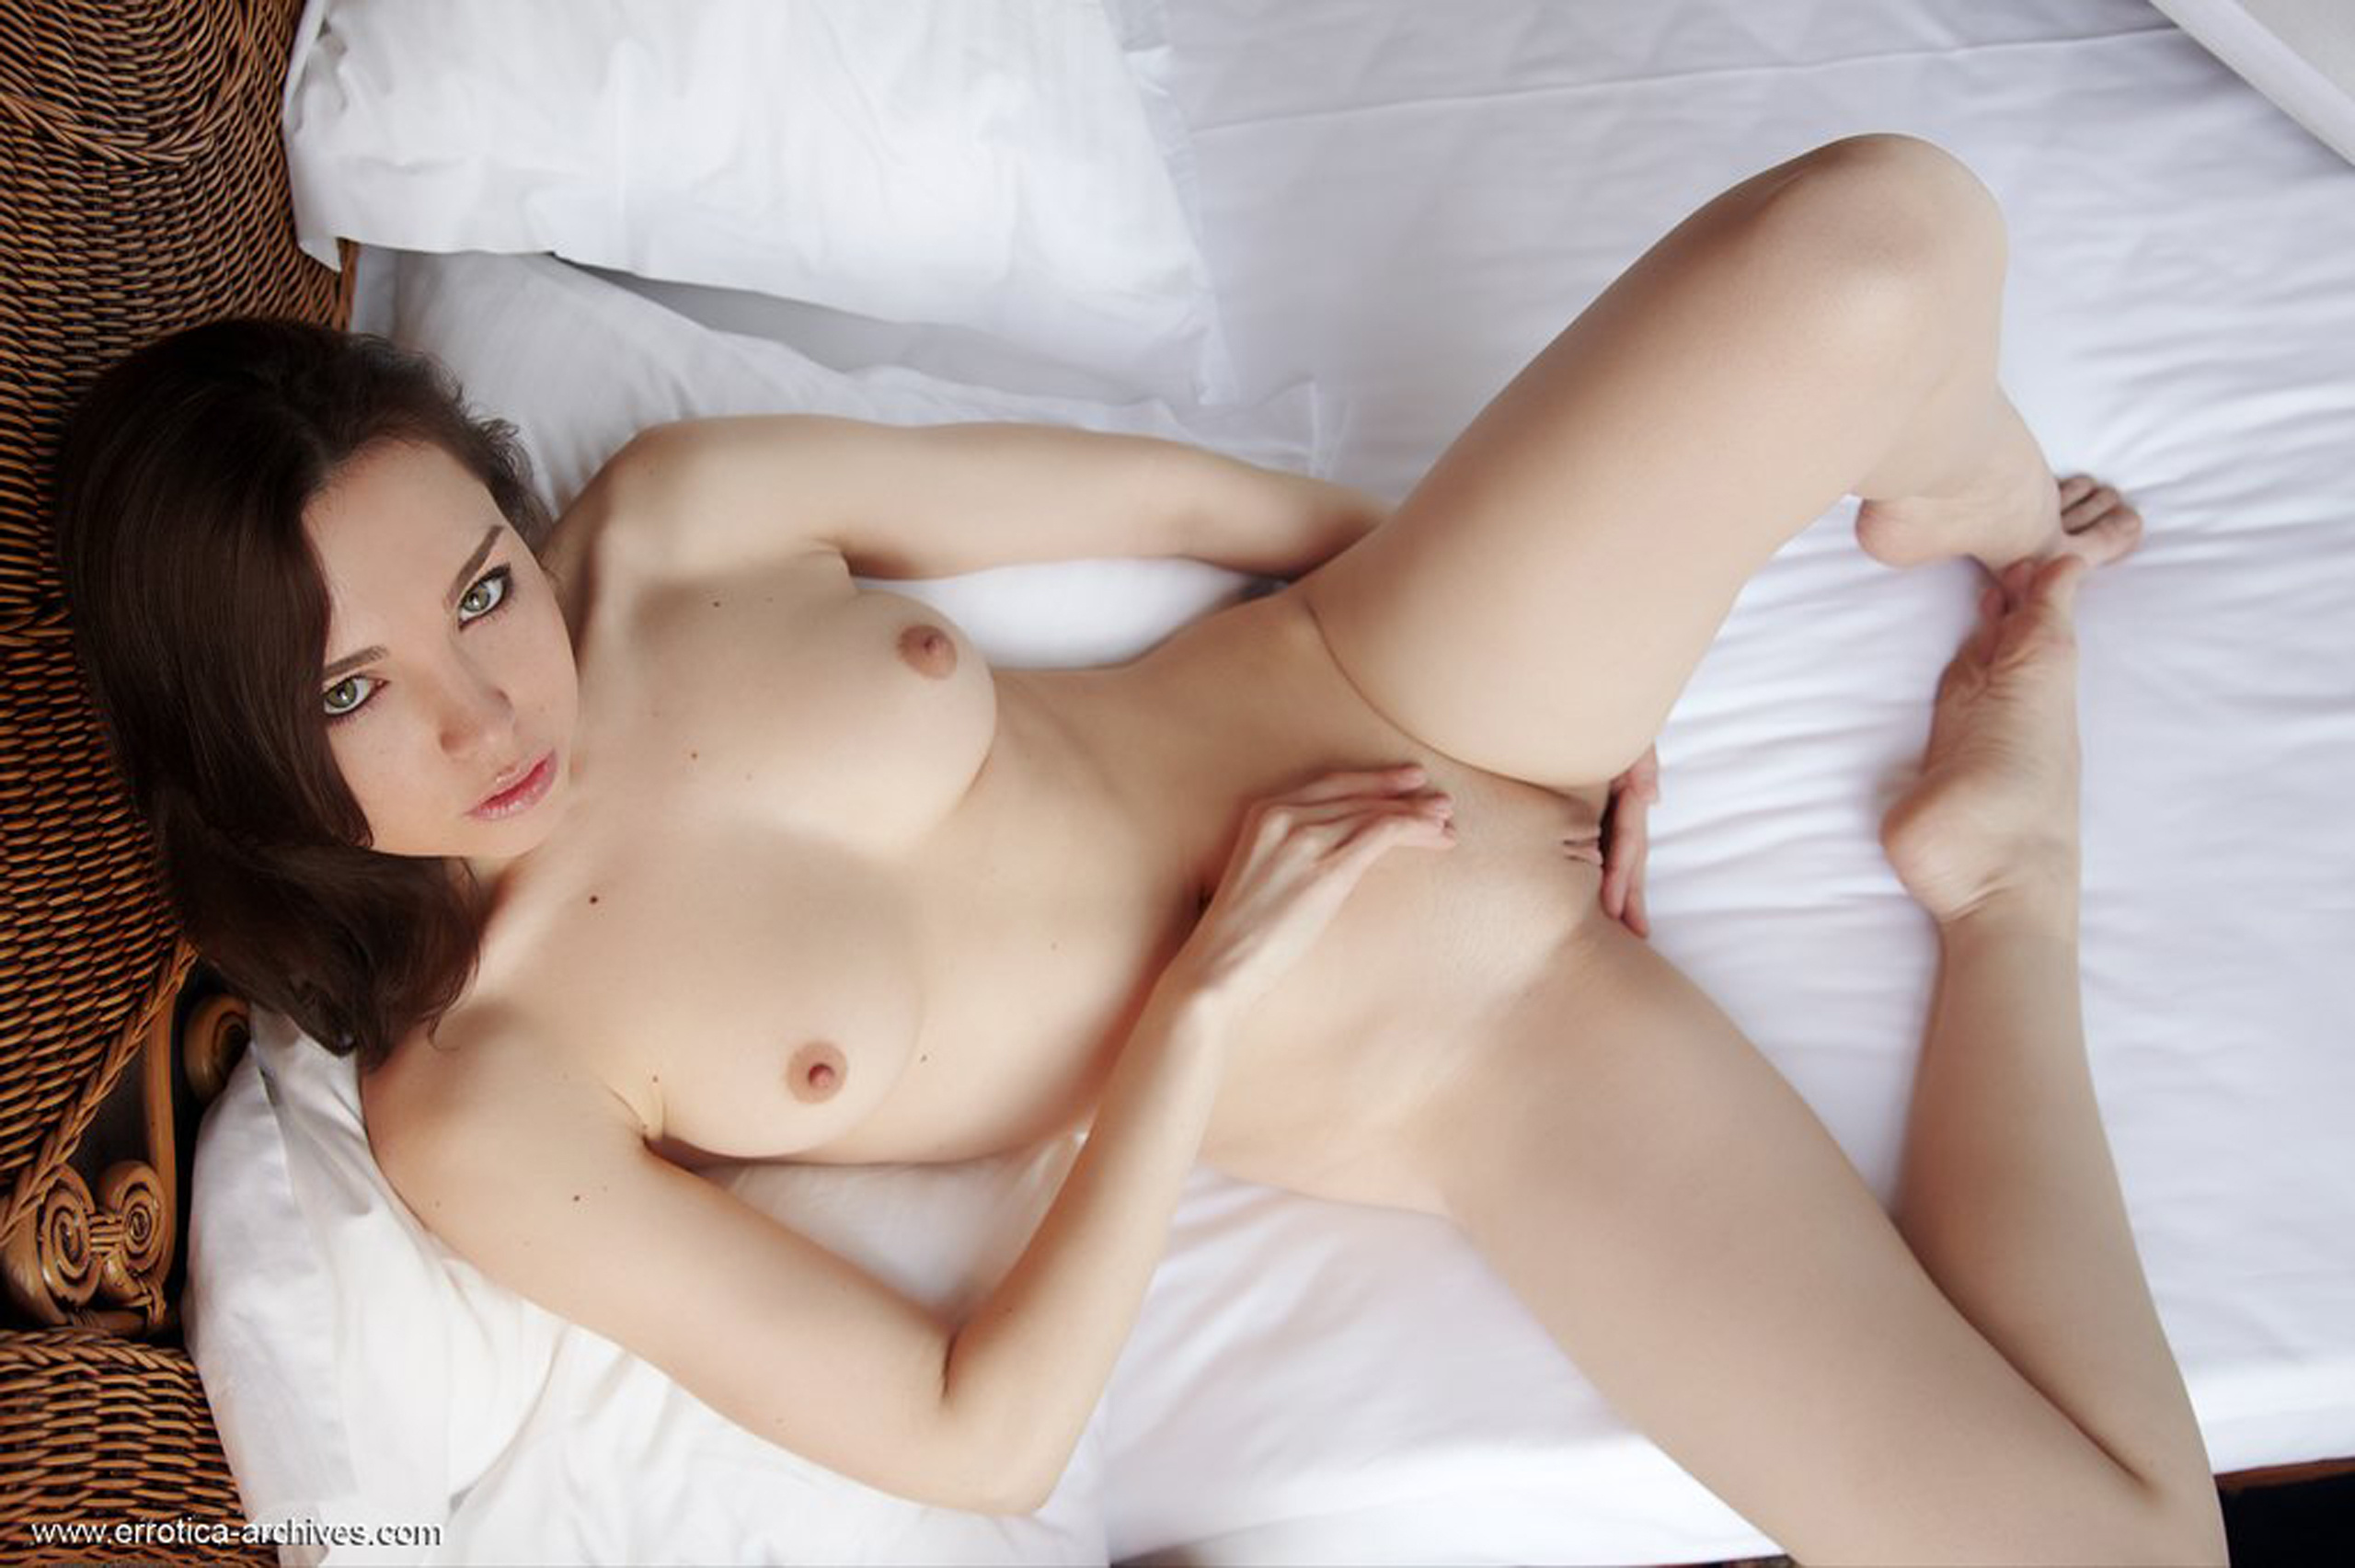 Beautfiul fantasy pussies get destroyed by hard cocks 8